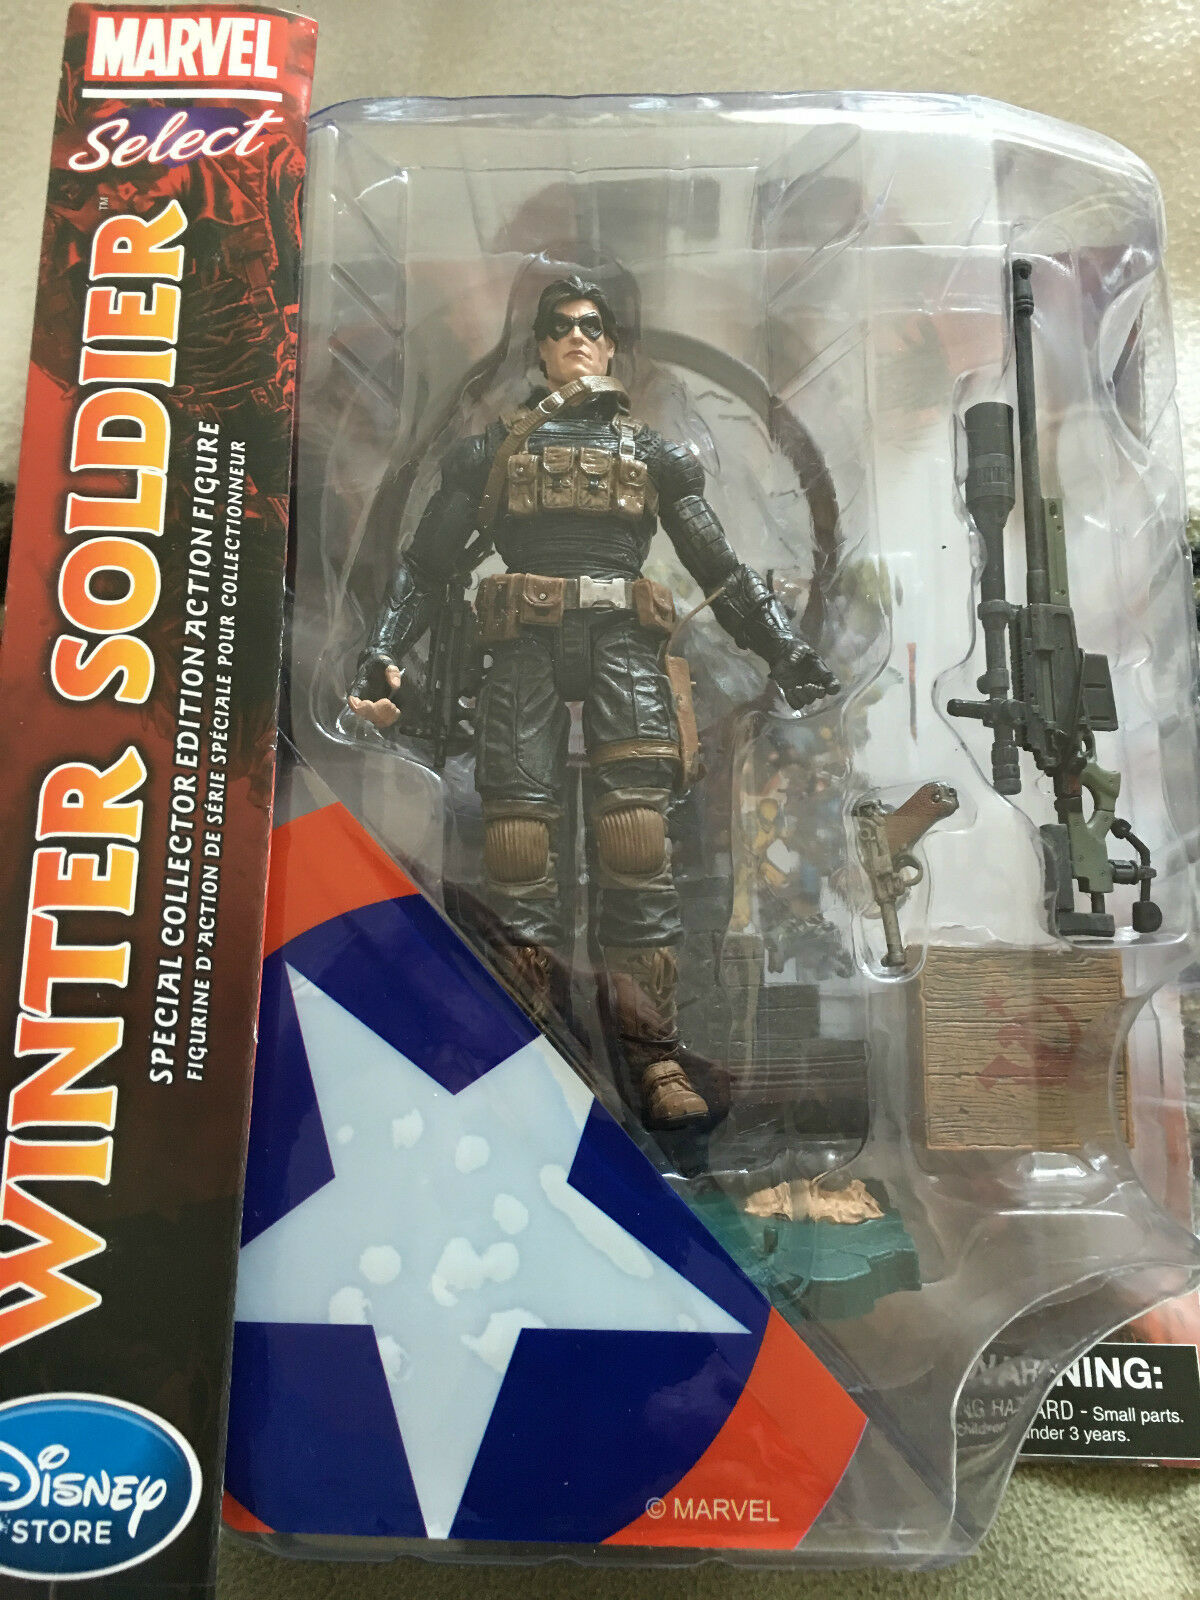 Marvel select  Winter soldier  special collector edition   6 inch figure set